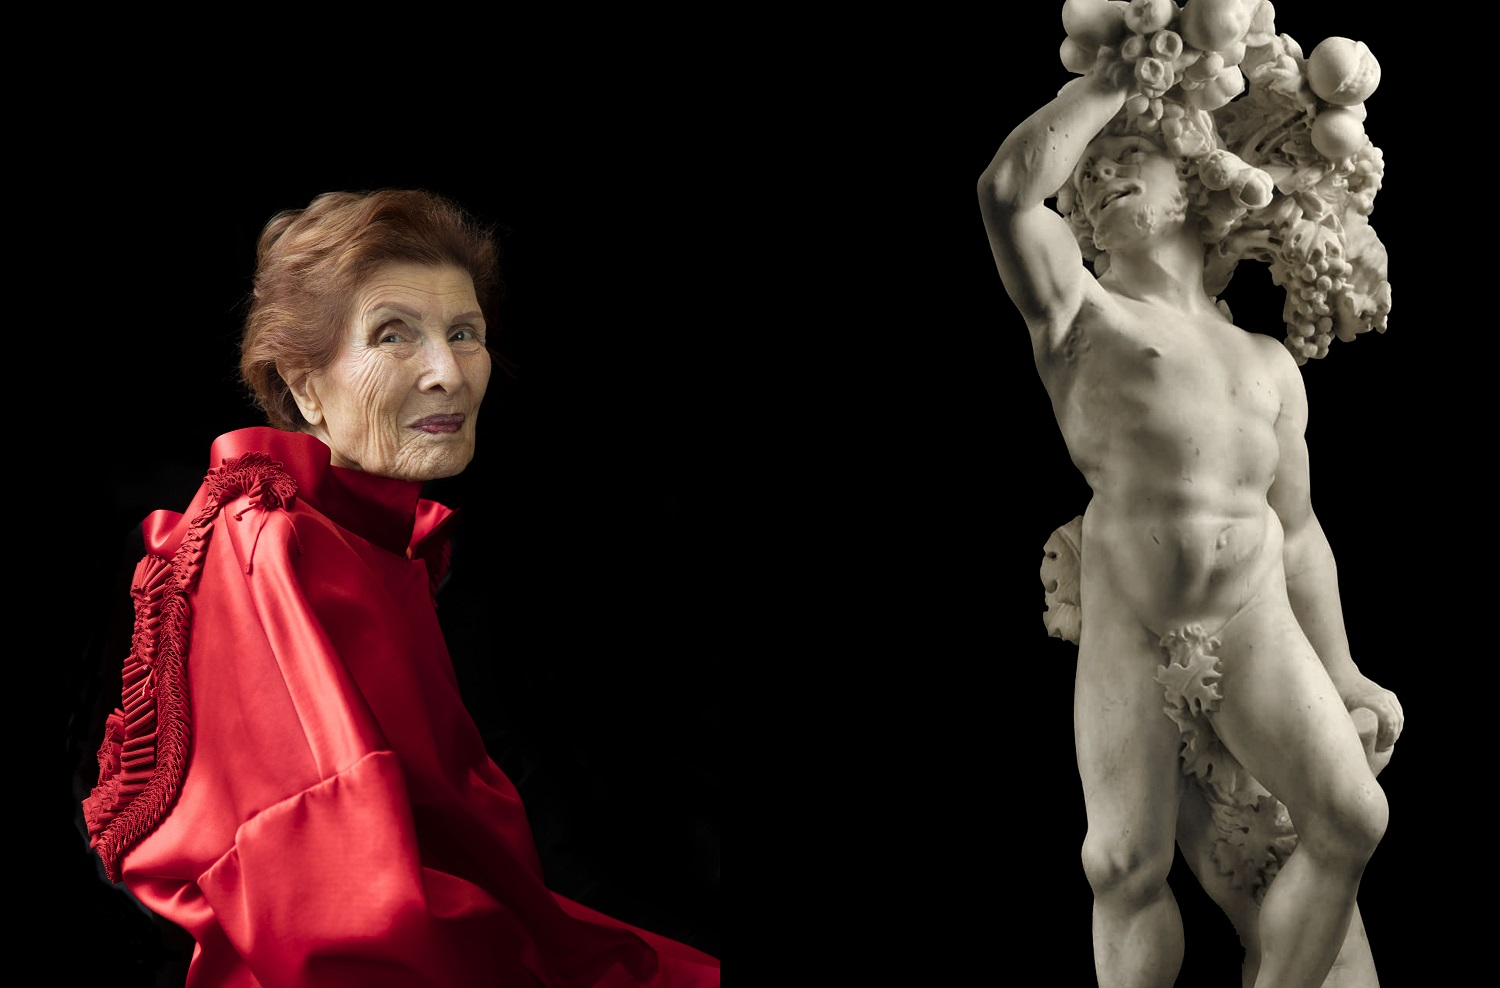 Sotheby's To Offer Hester Diamond's Pioneering Old Masters Collection